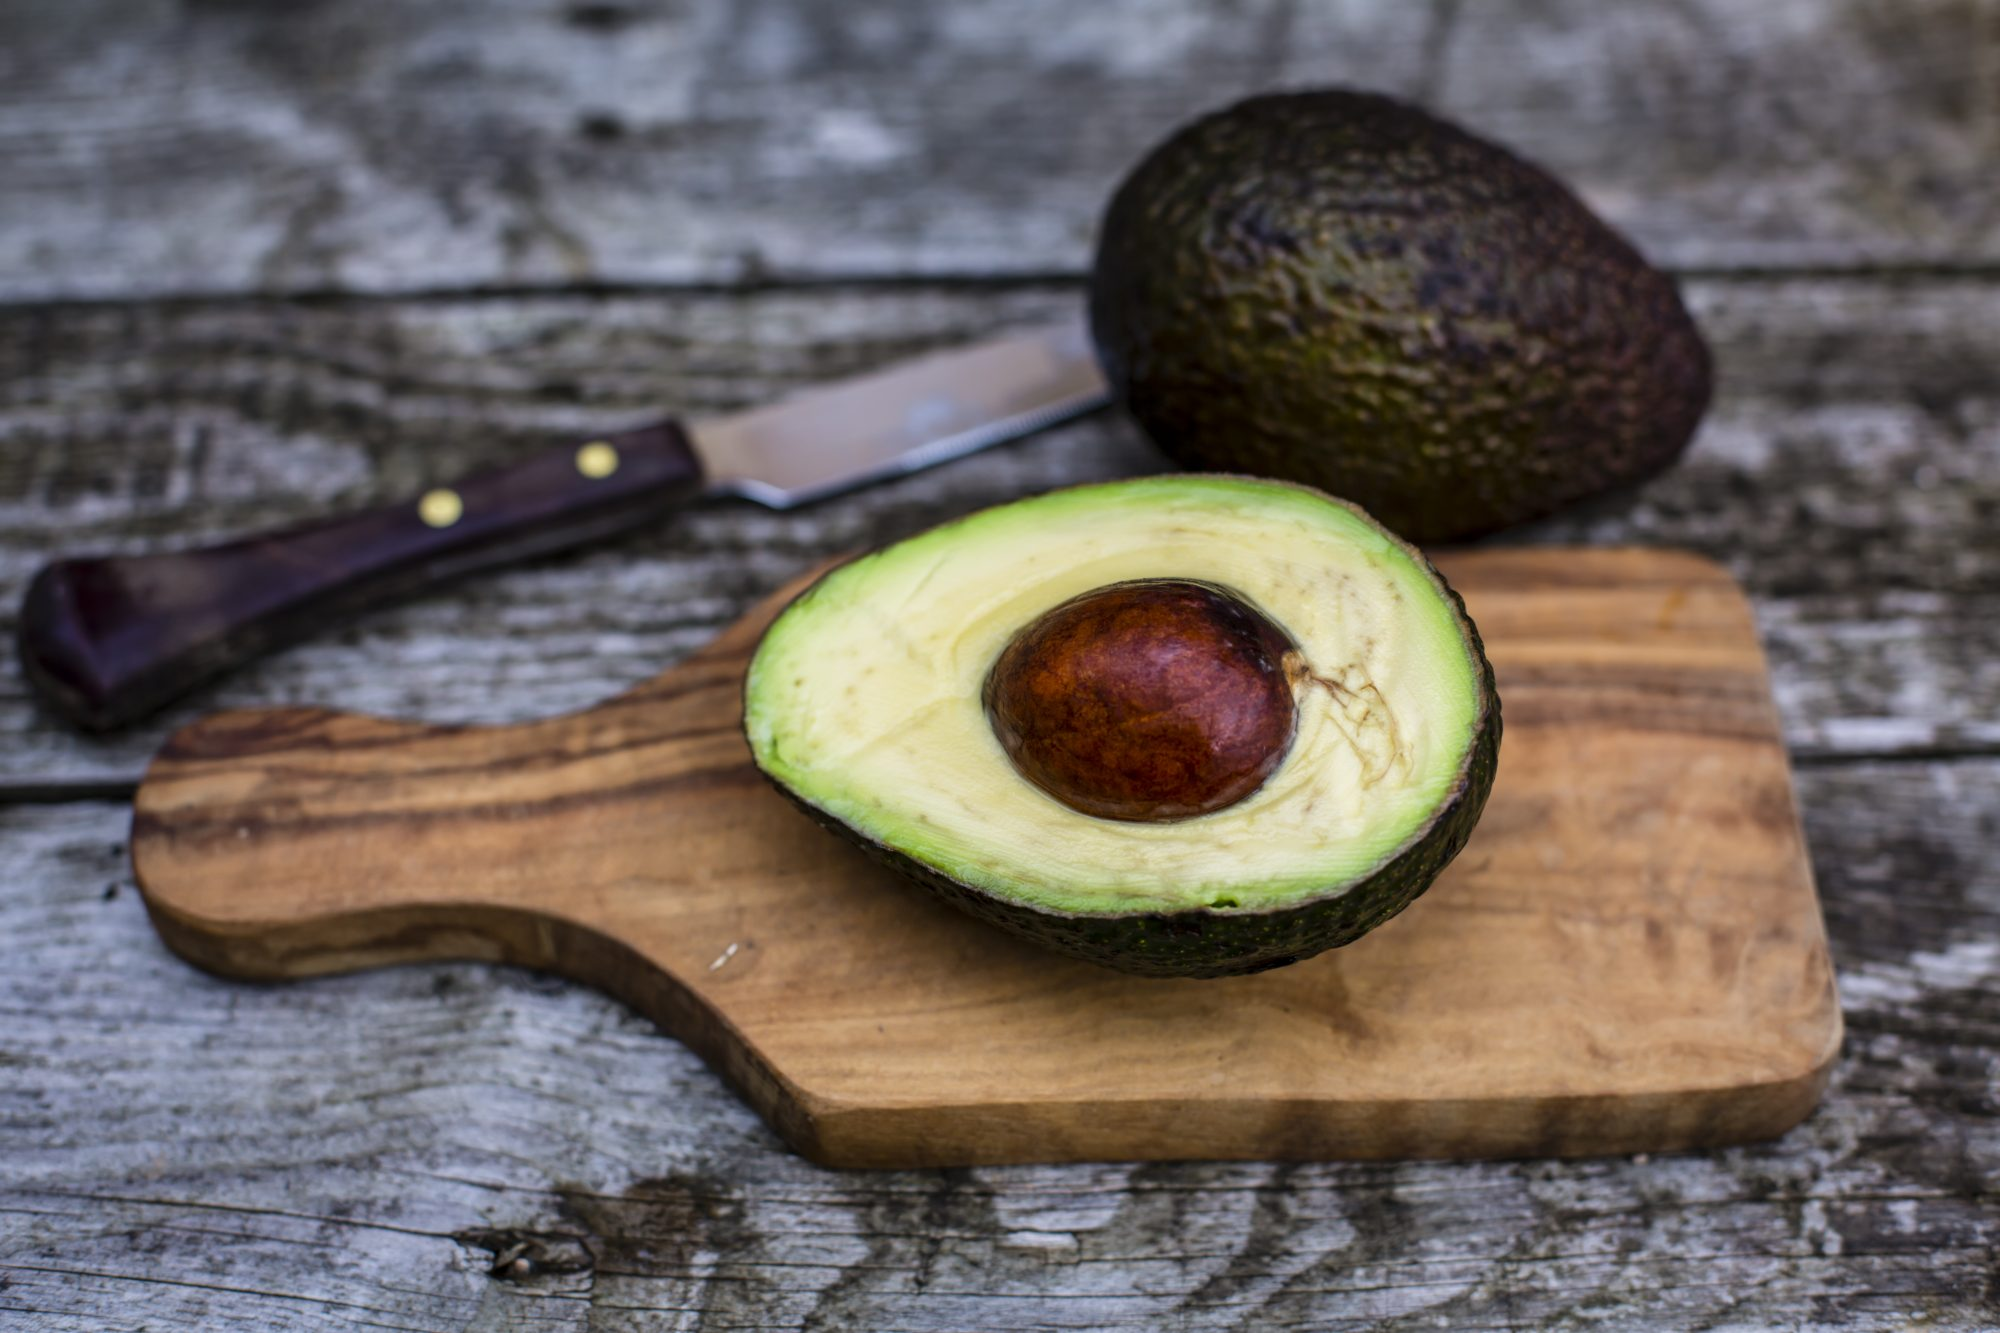 What's the Deal With Stringy Avocados?